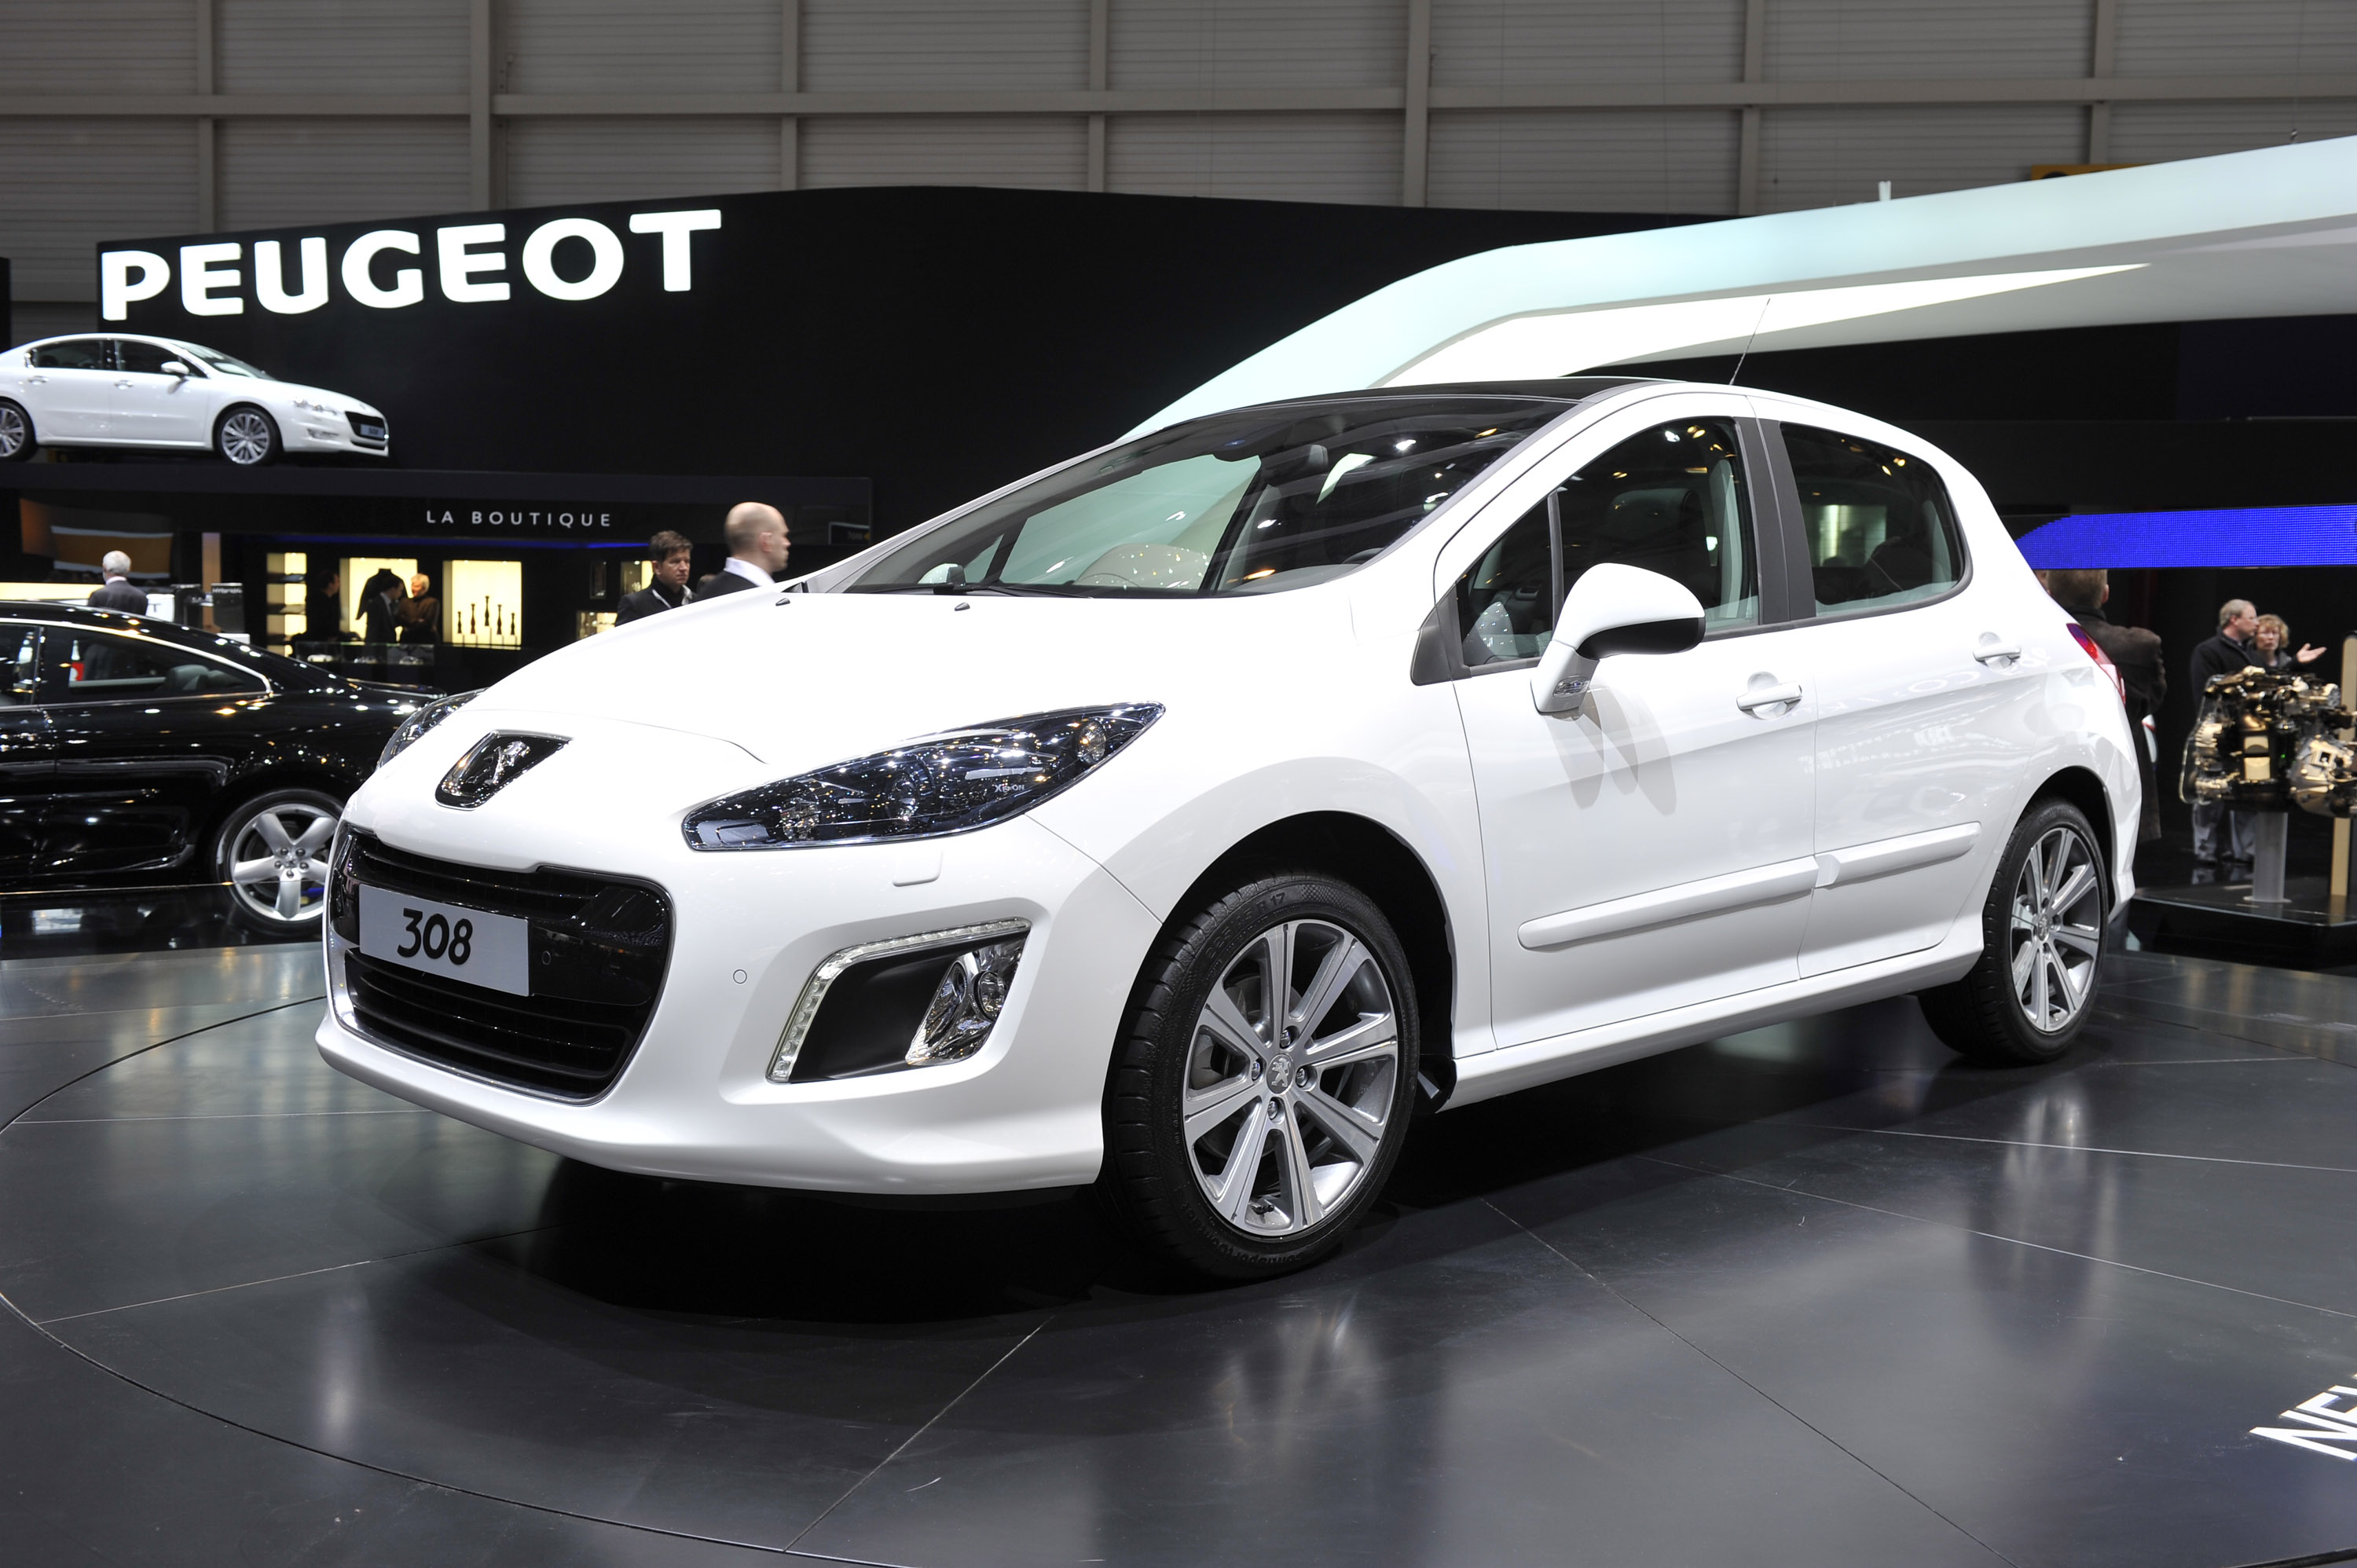 2011 Peugeot 308 - pictures, information and specs - Auto ...